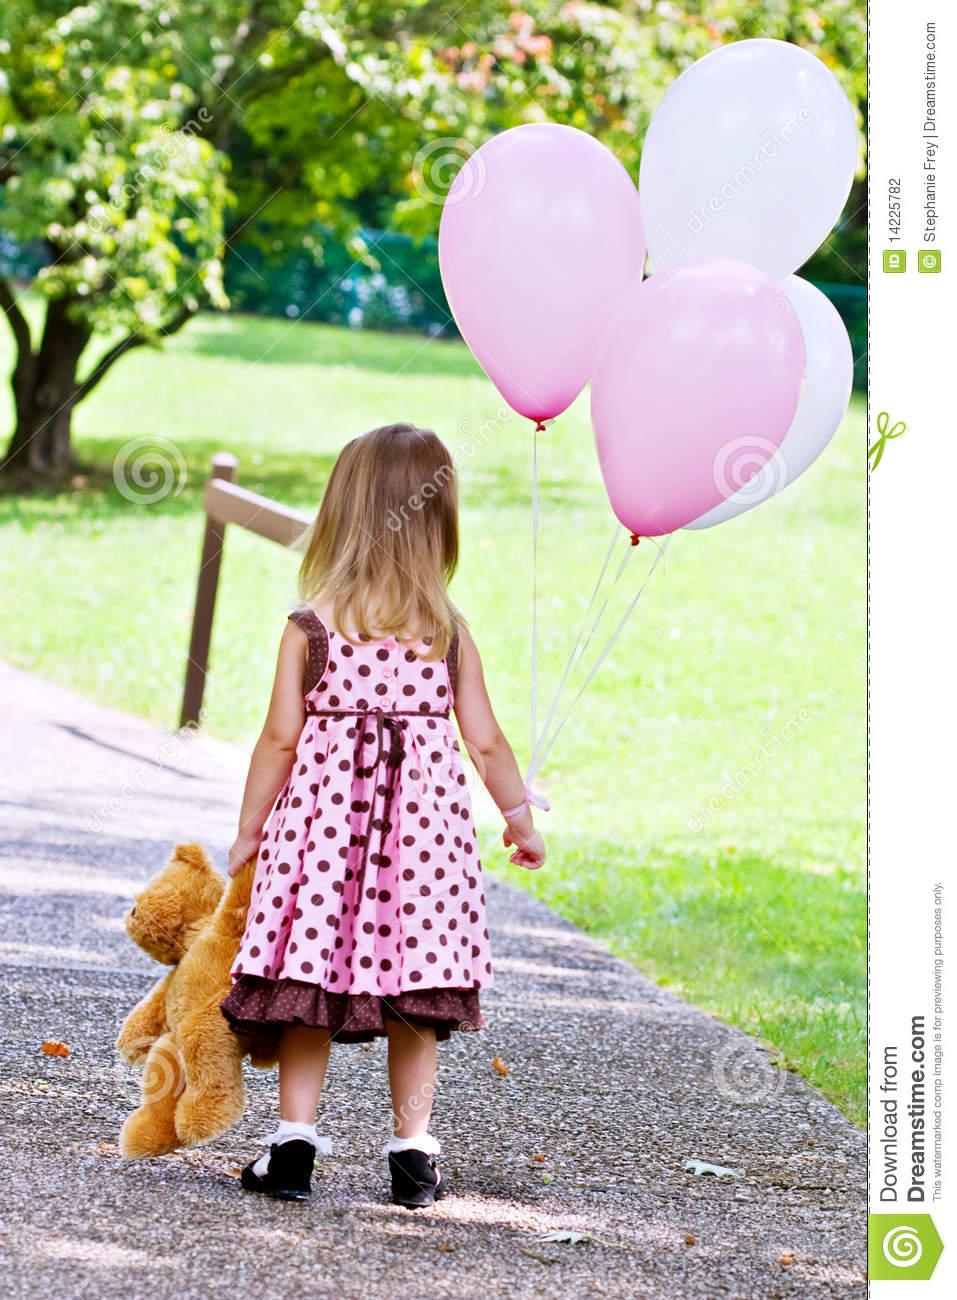 Dragging Teddy Bear And Holding Balloons Stock